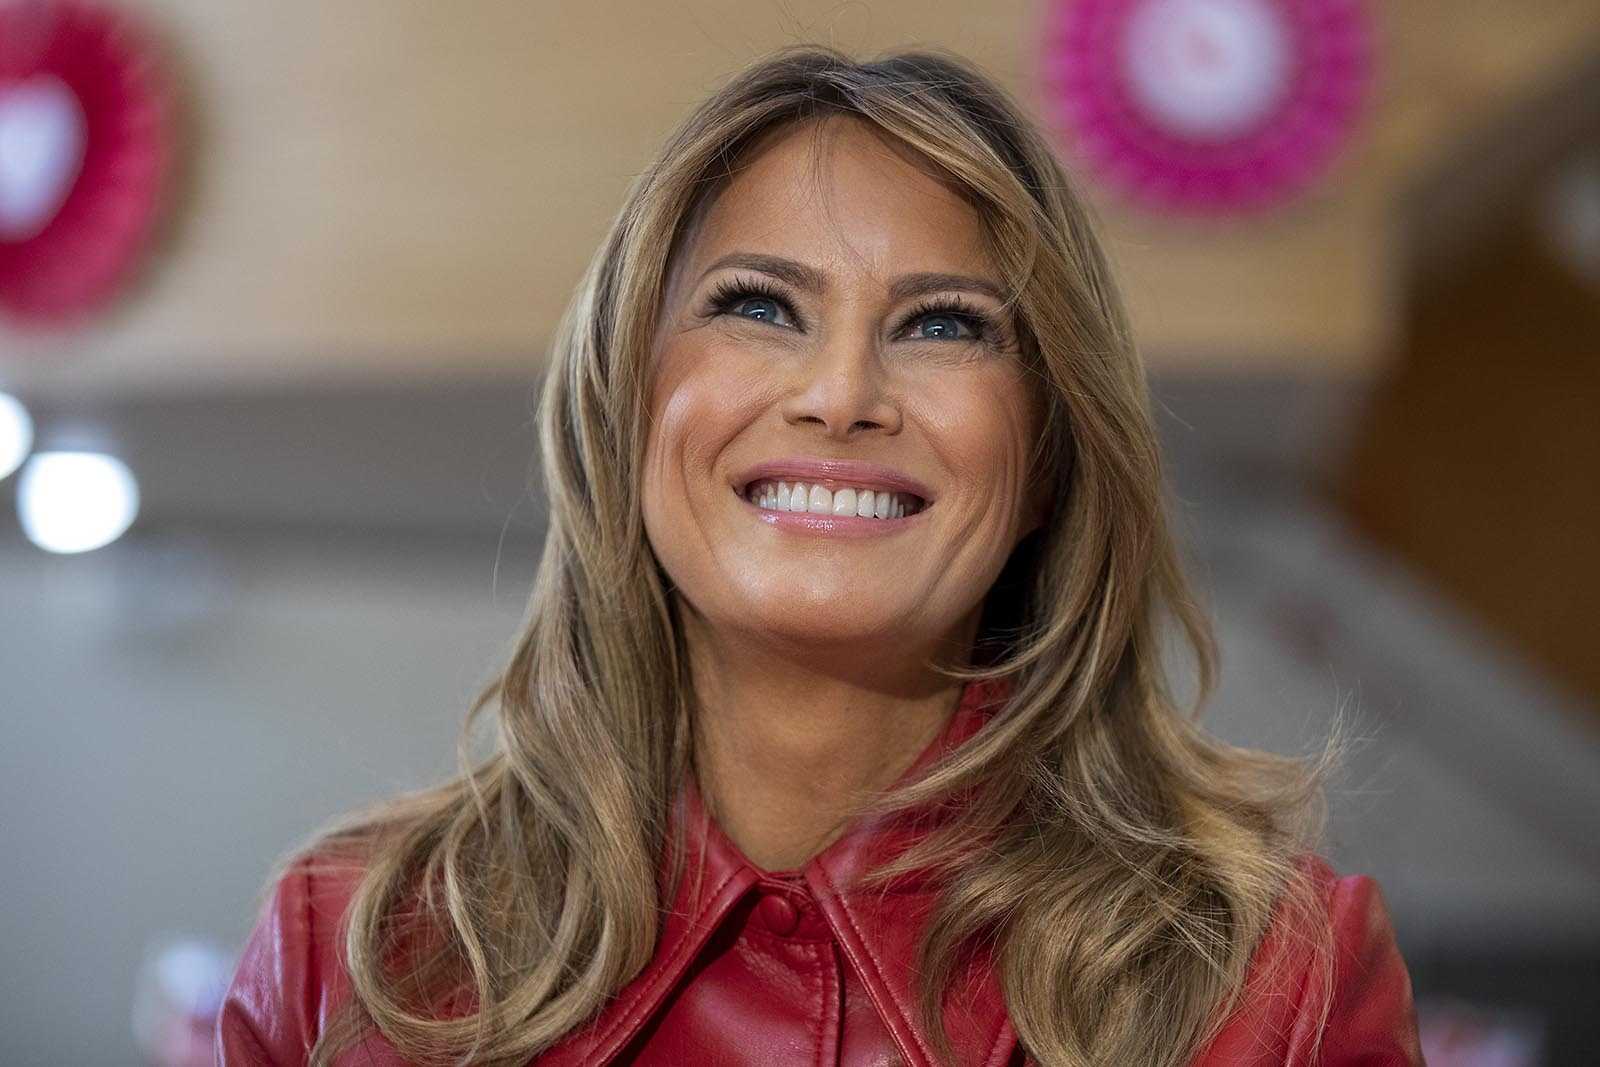 First Lady Melania Trump visits the Children's Inn at National Institute of Health on Valentine's Day on February 14 in Bethesda, Maryland.